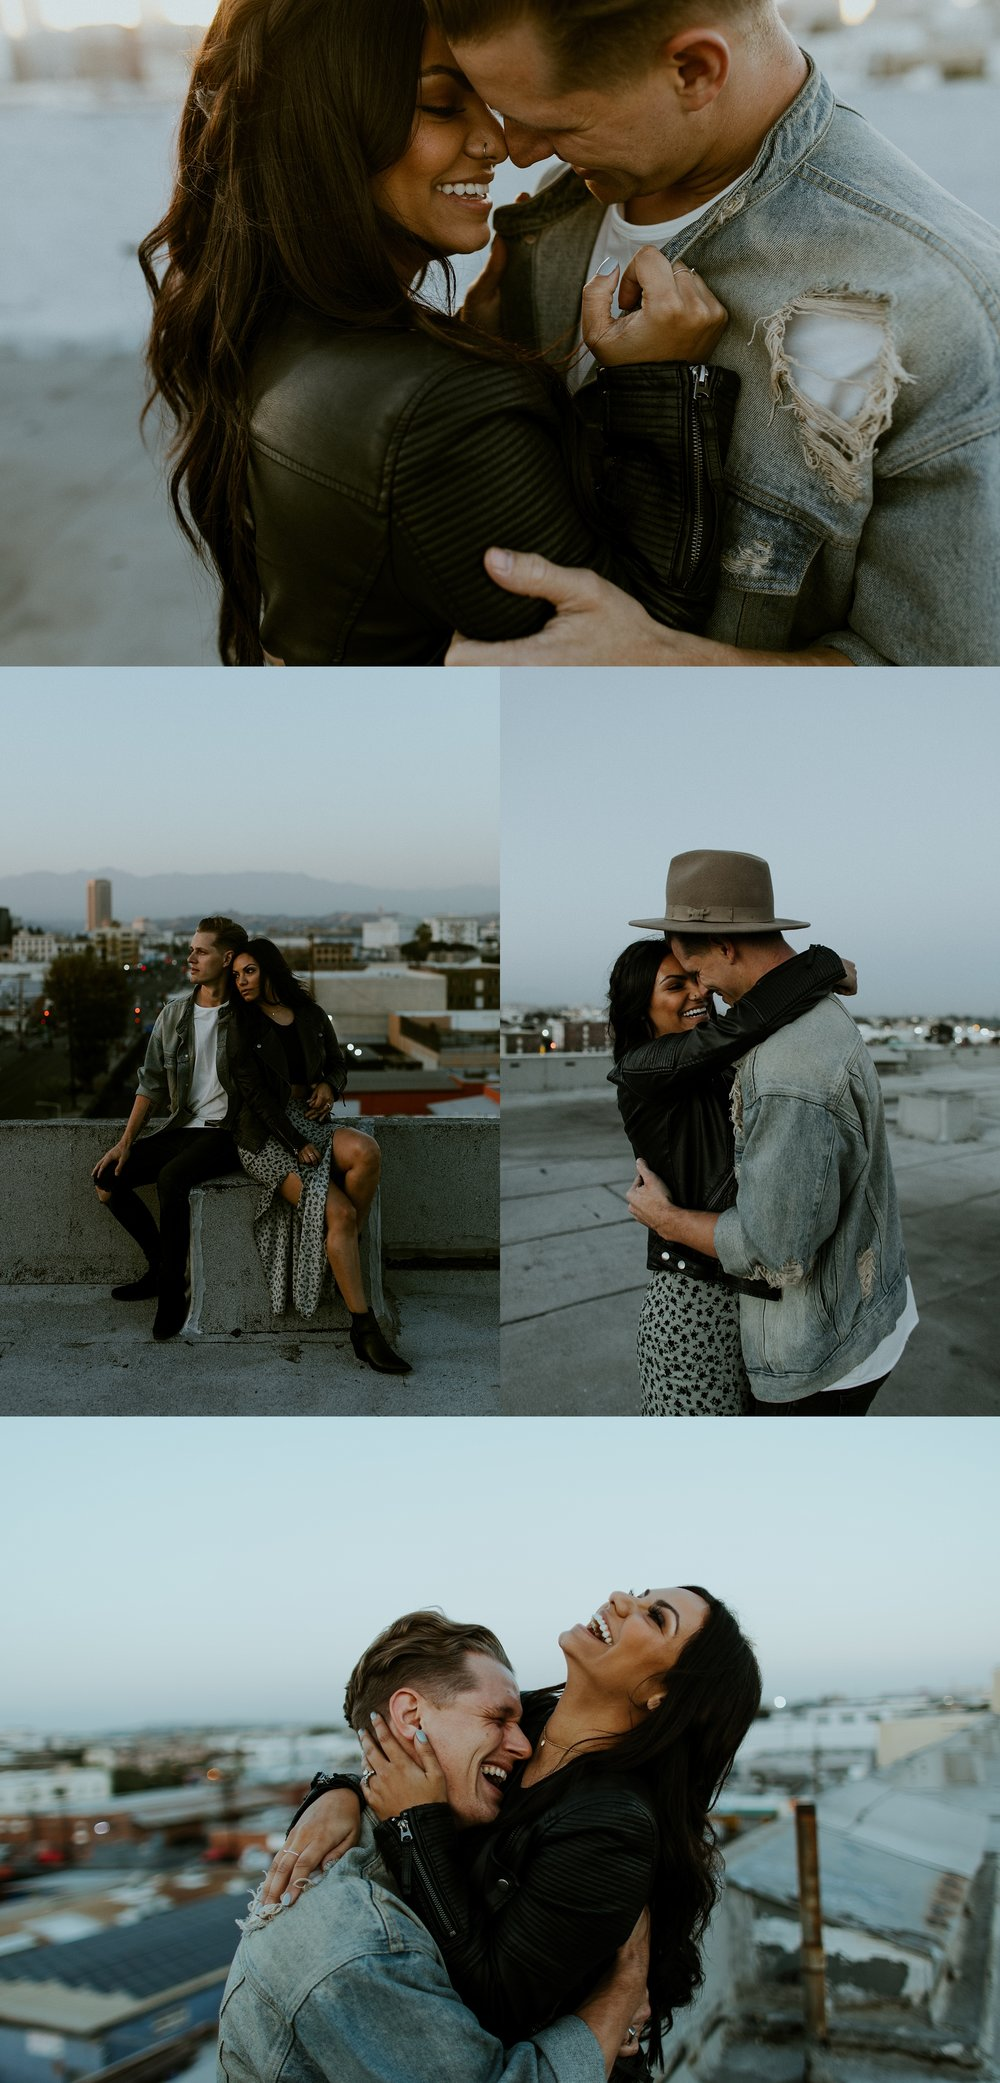 DTLA Rooftop Engagement Session by Trin Jensen Photography  - Los Angeles Wedding Photographer_0045.jpg